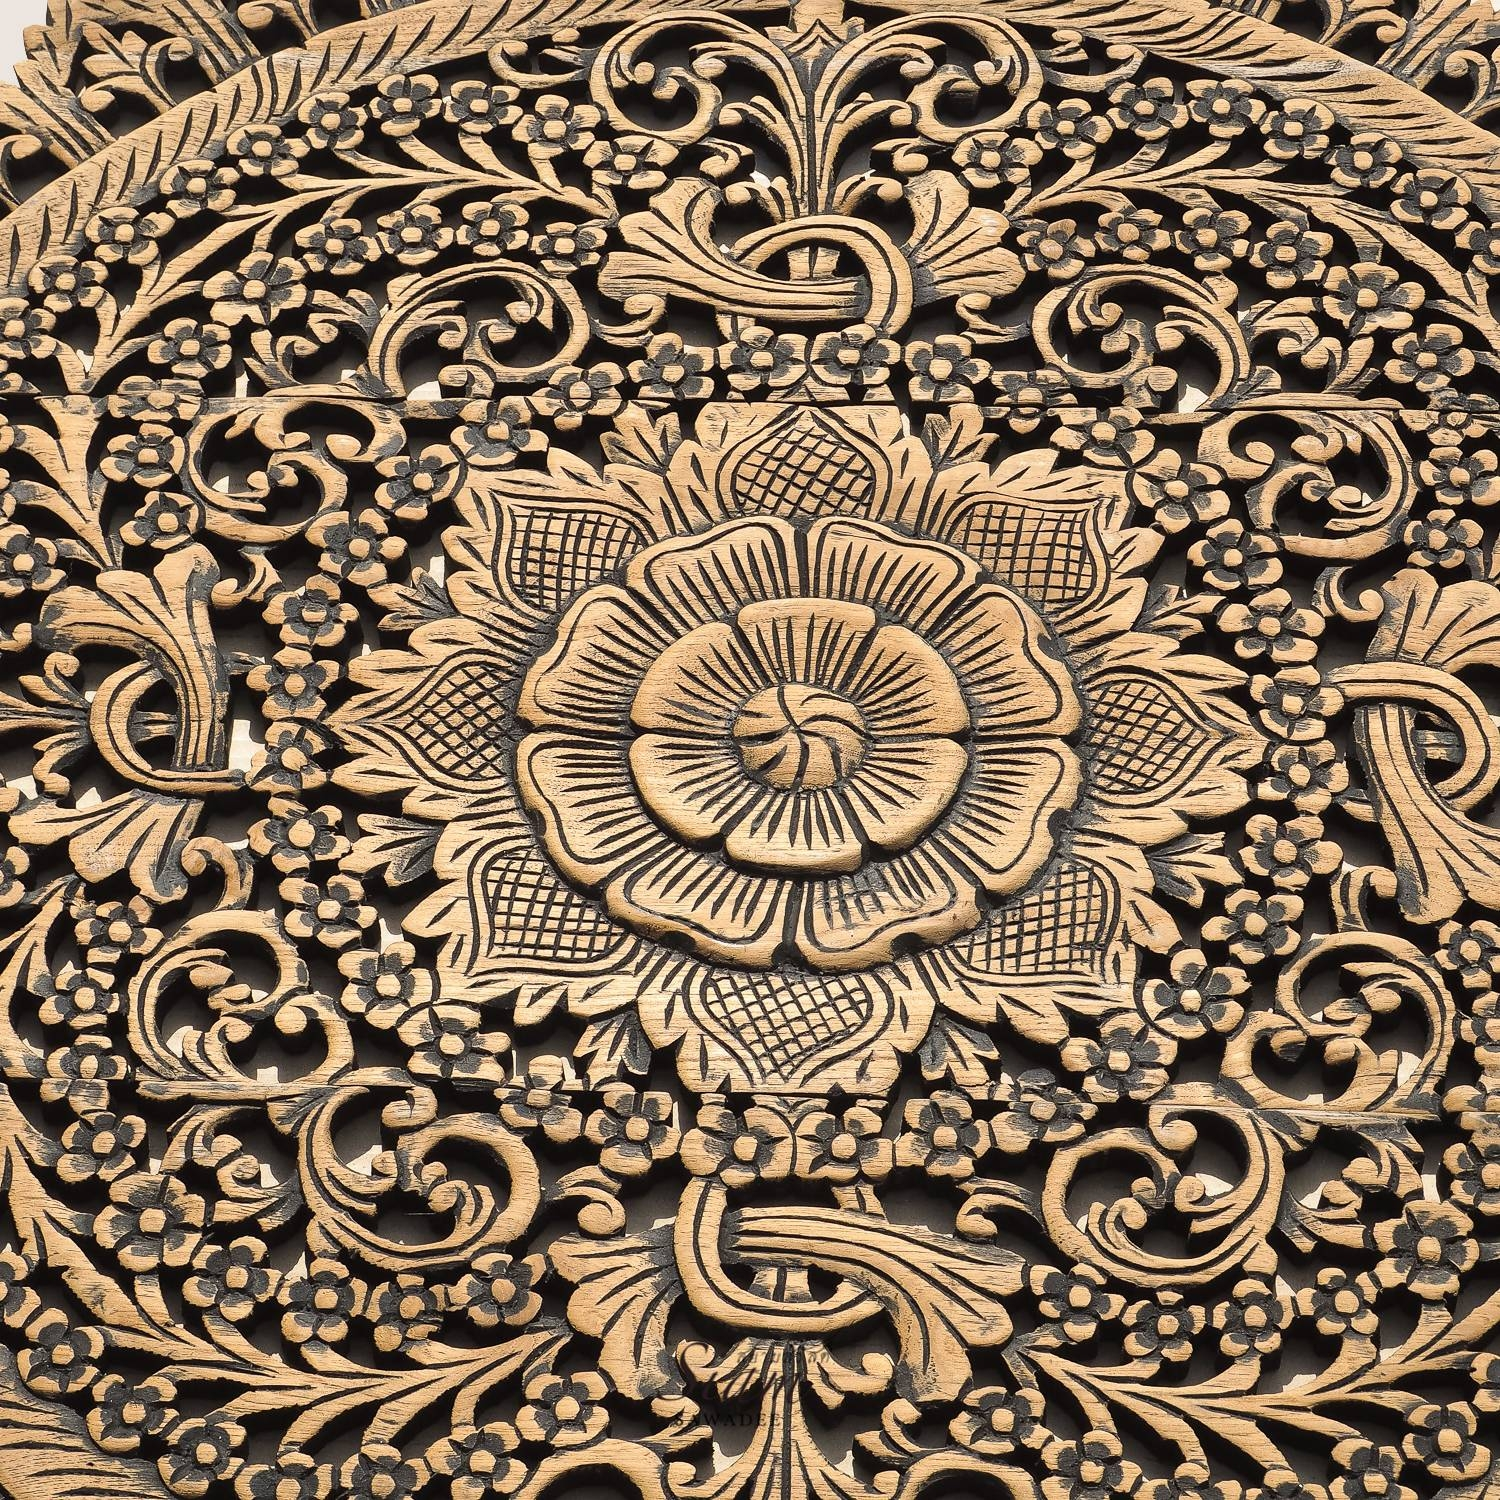 Rustic Carved Wall Art Panel Asian Home Decor – Siam Sawadee Within Latest Wood Wall Art Panels (View 11 of 20)